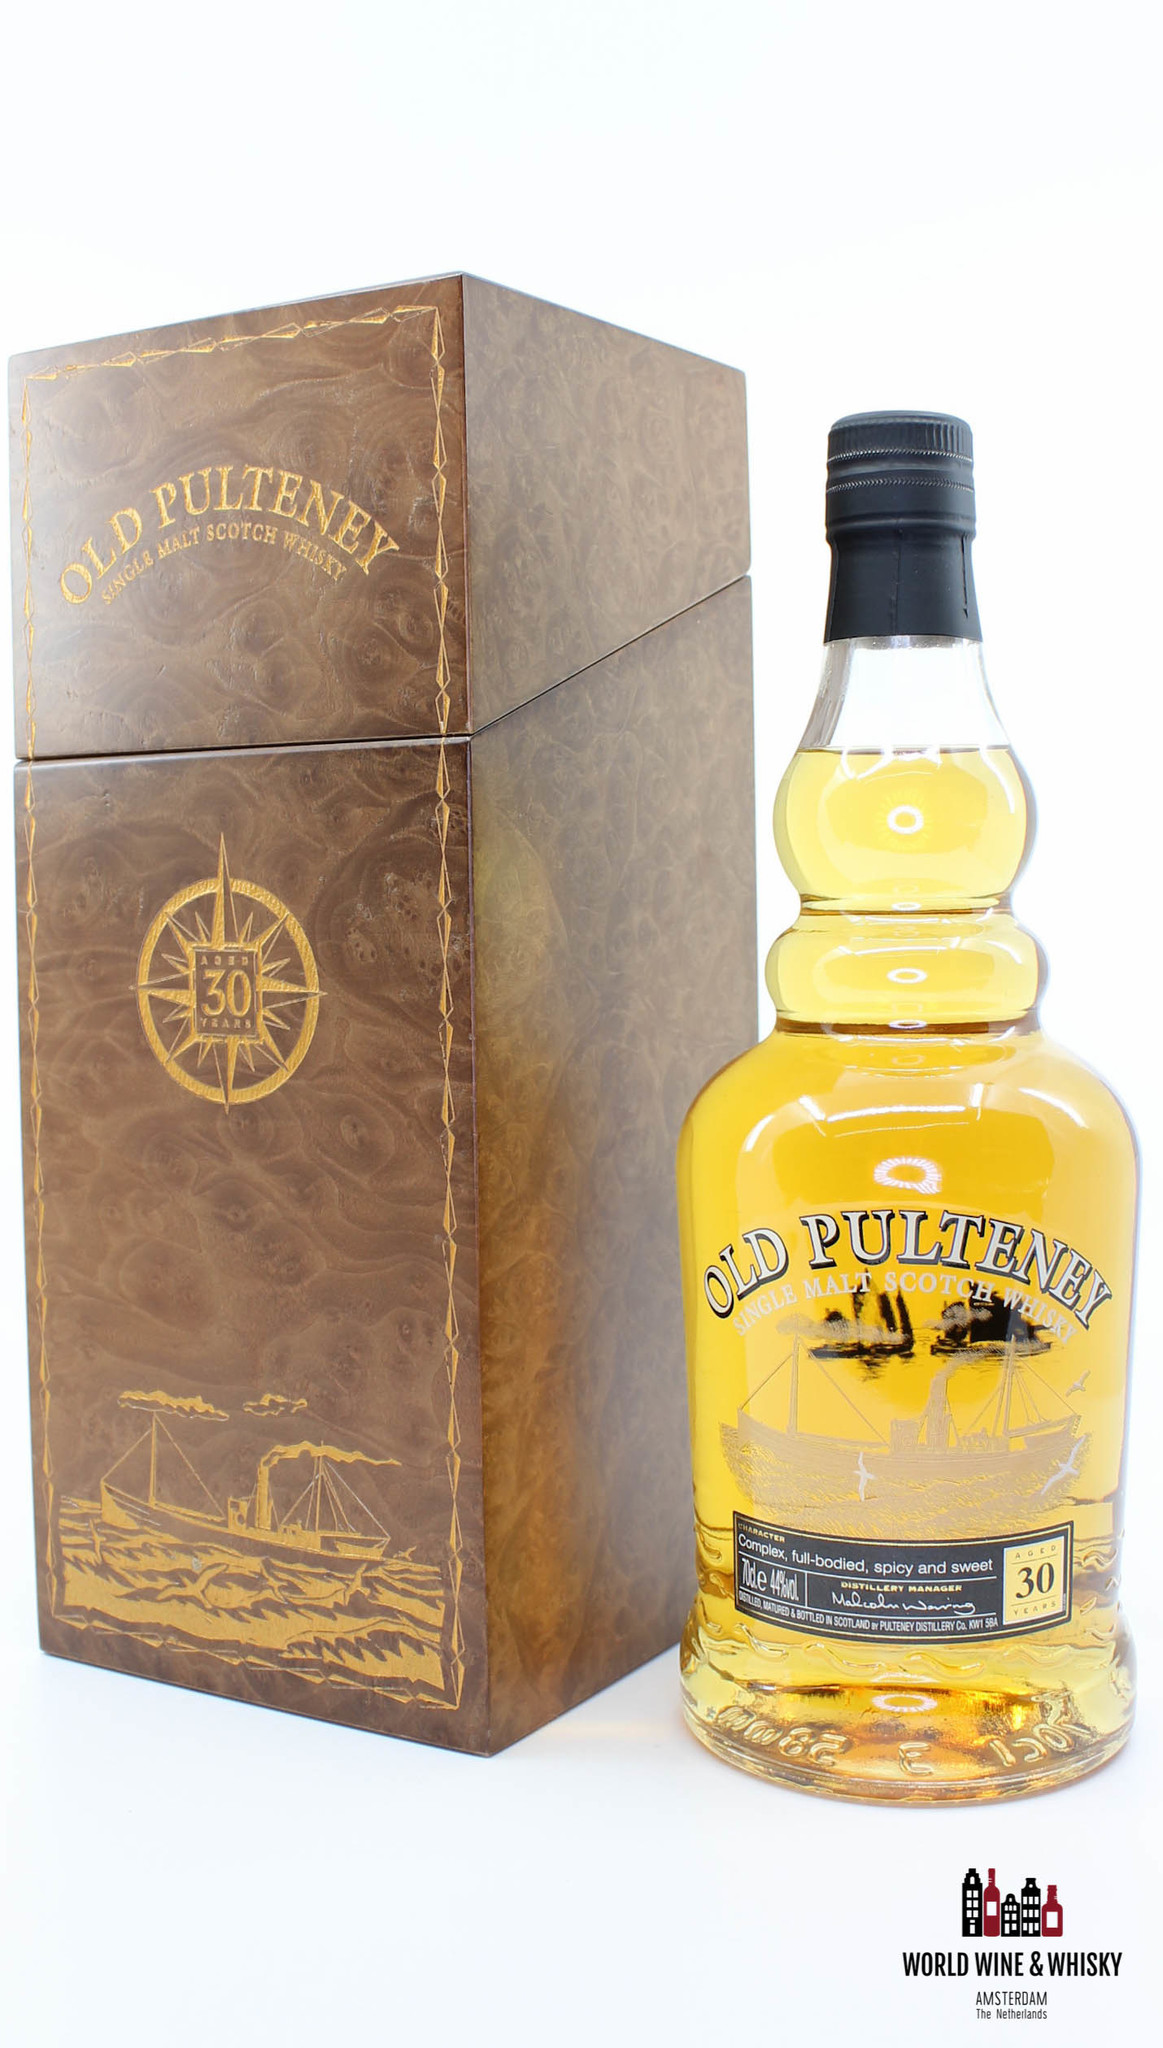 Old Pulteney Old Pulteney 30 Years Old 2009 44% (in luxury case)